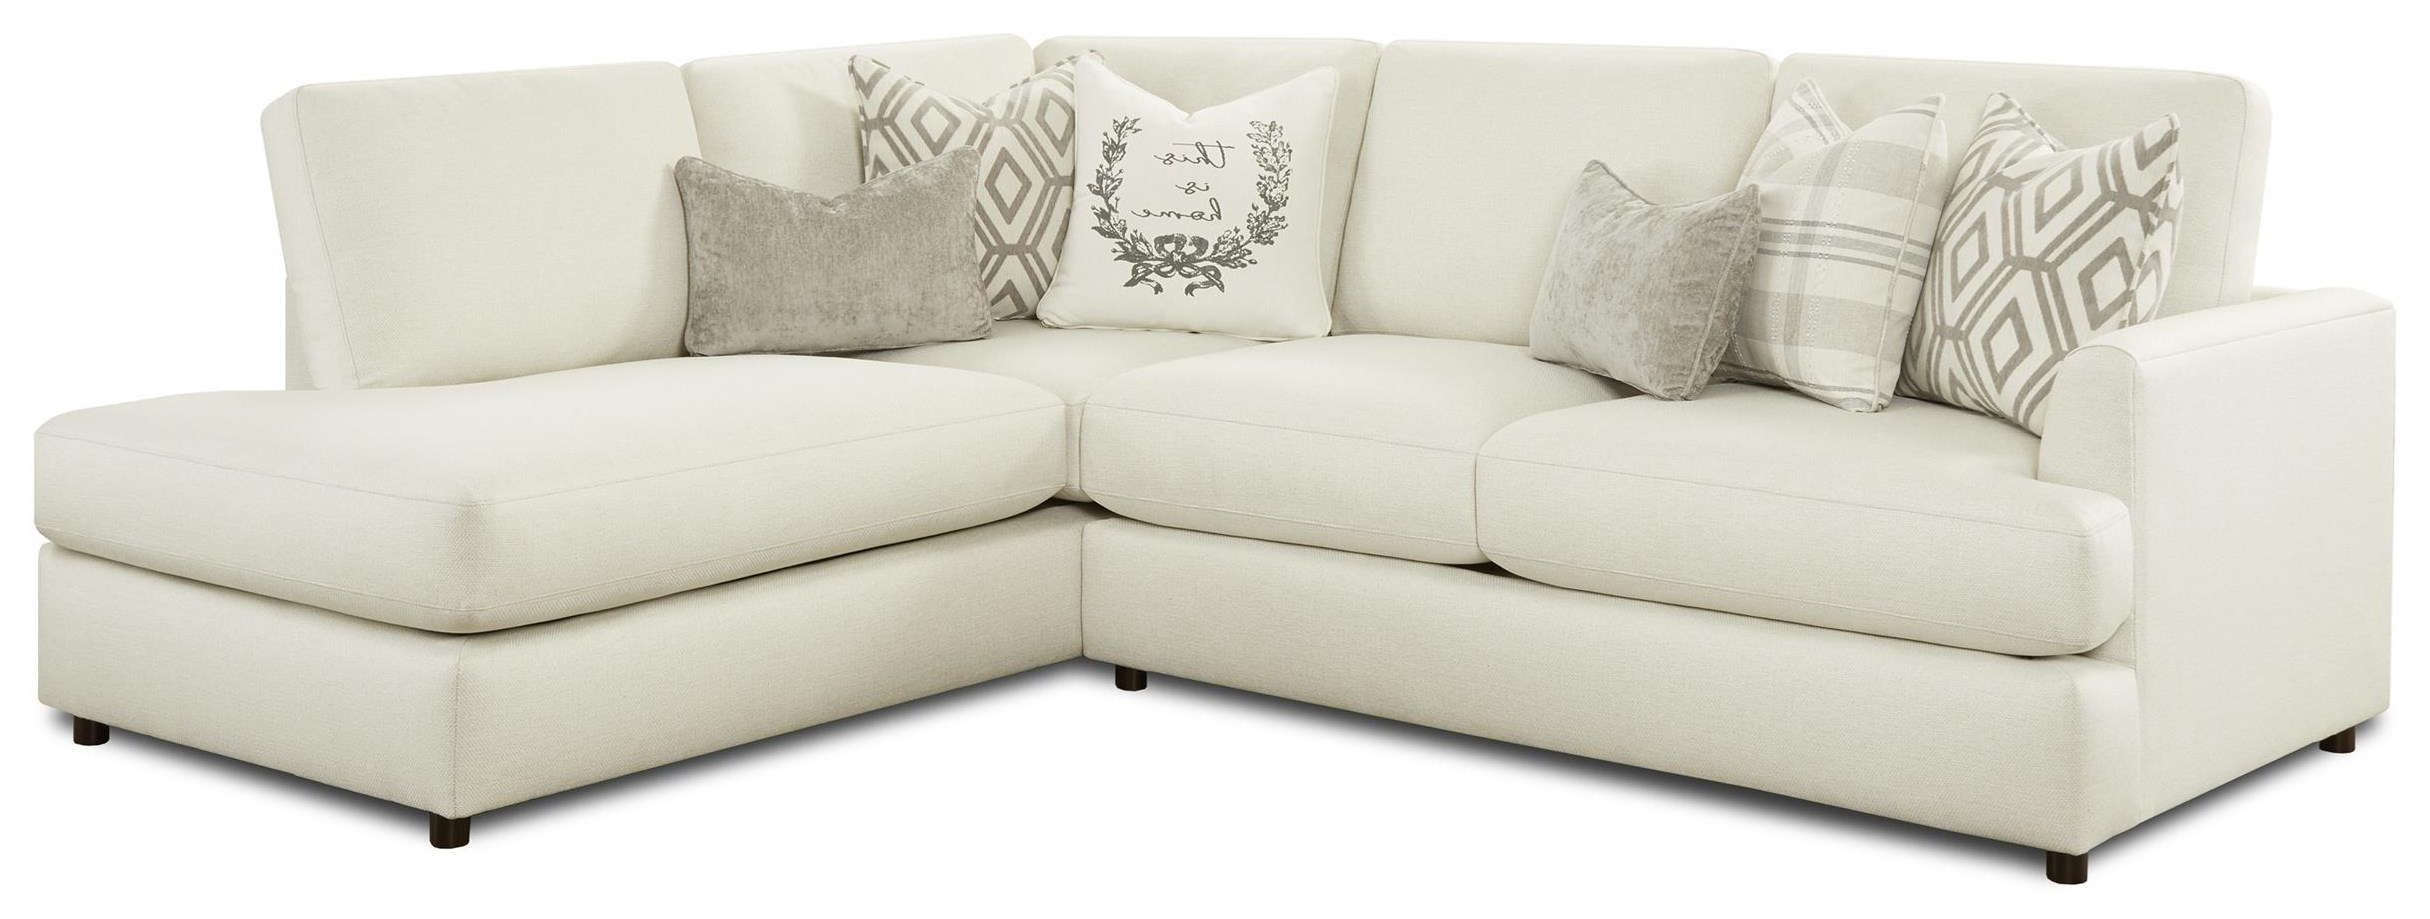 Two Piece Sectional - RAF Sofa LAF Chaise